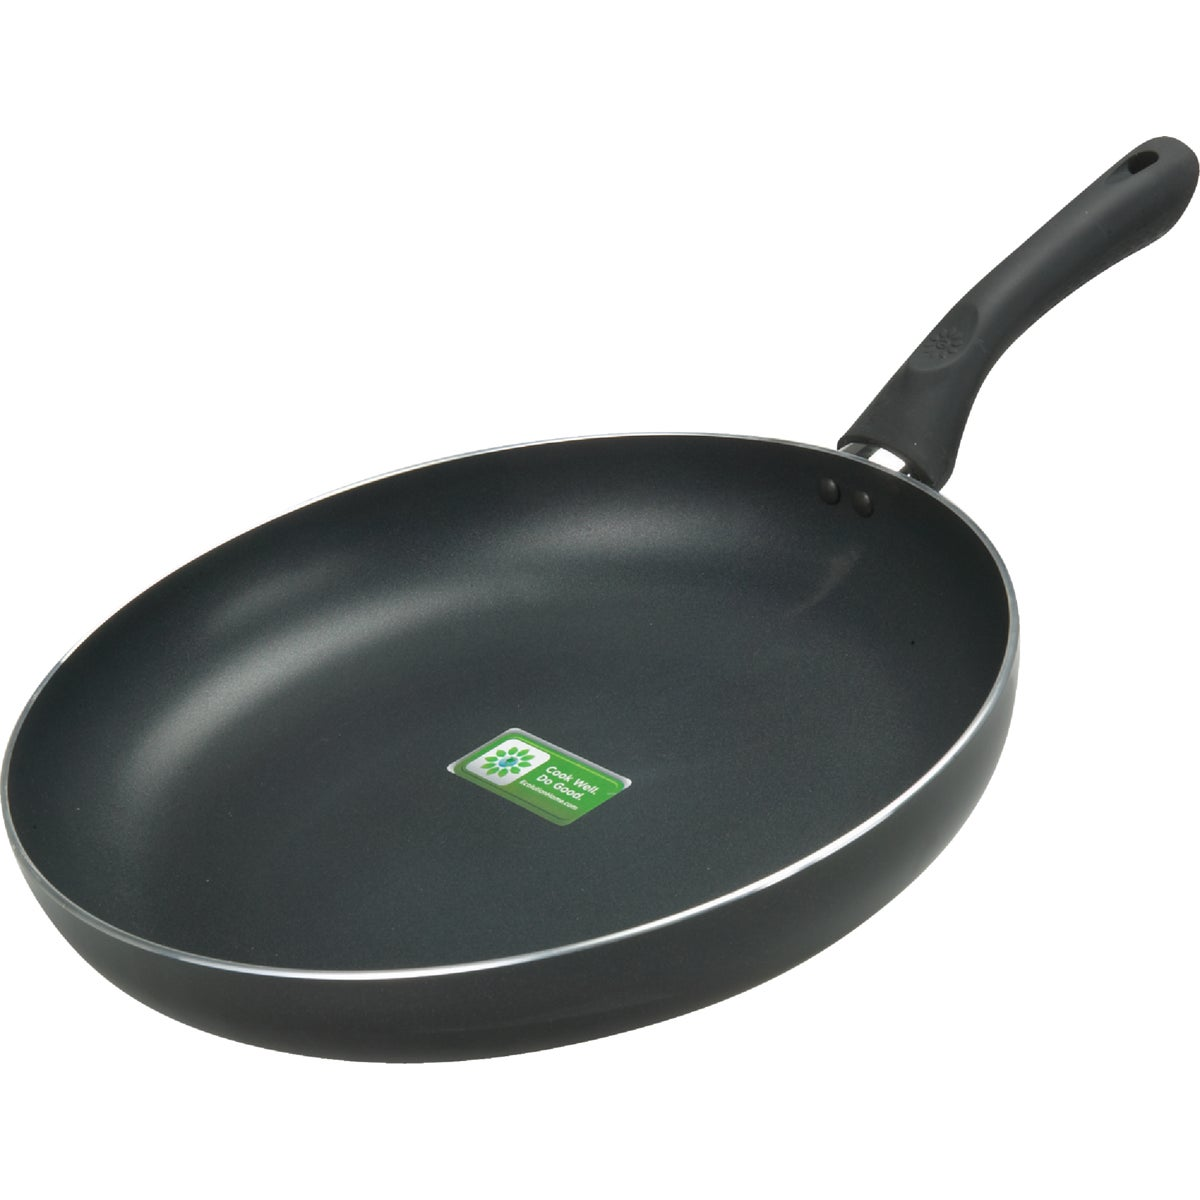 "12.5"" GRANDE FRY PAN - EABK-5132 by Epoca Inc"